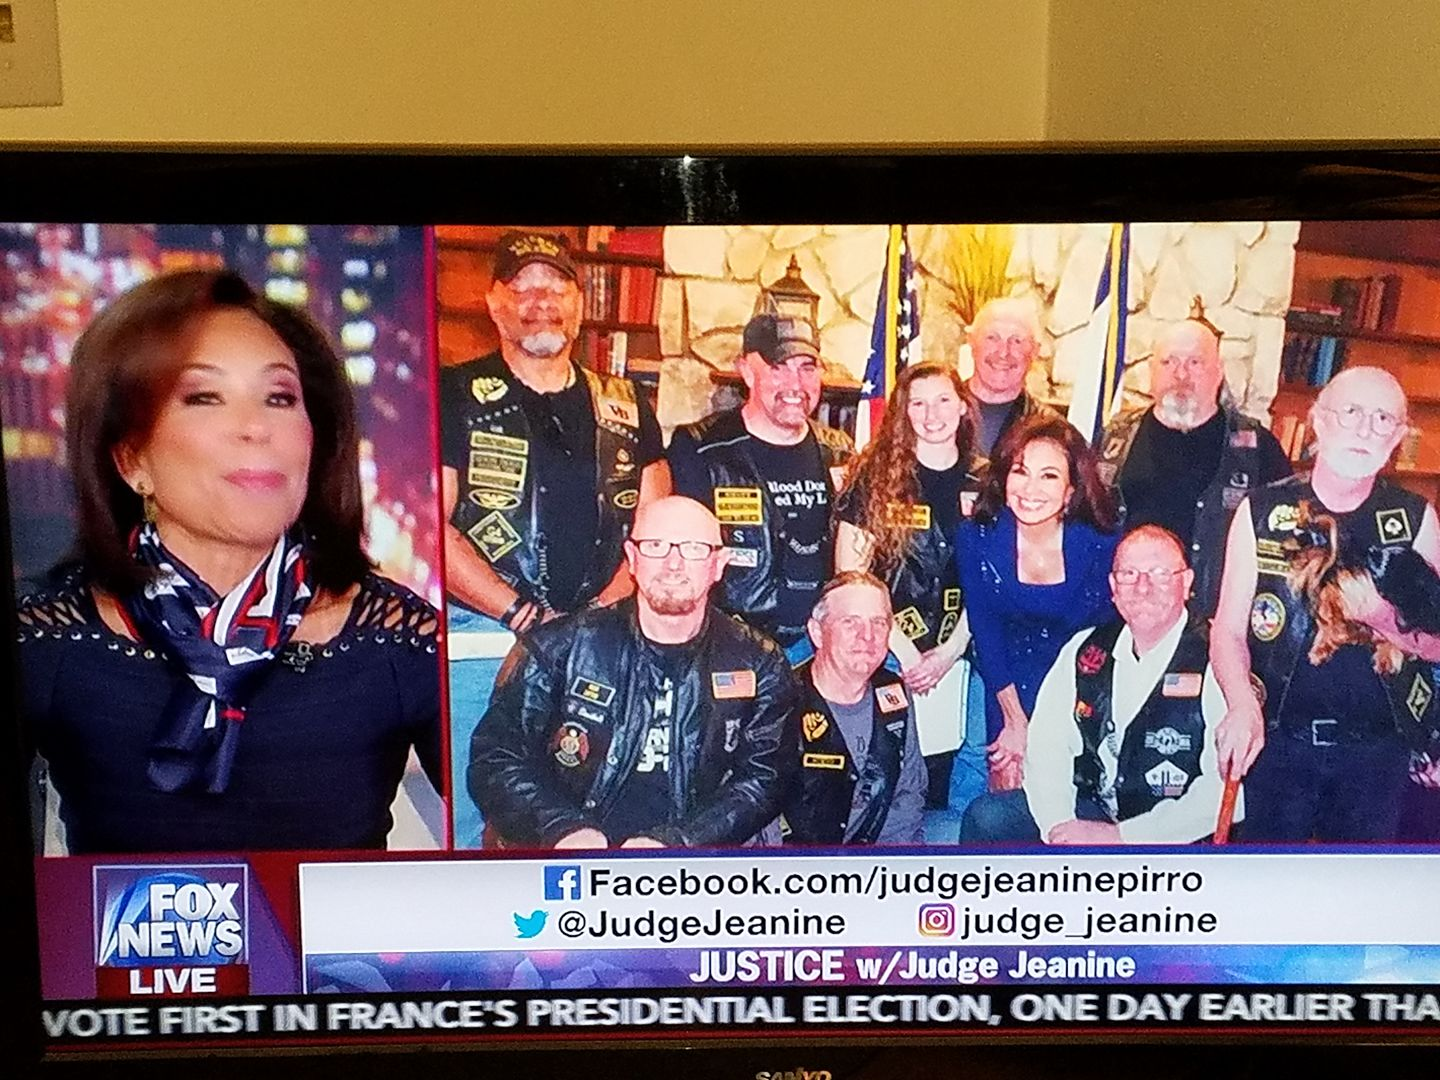 VBMC RECOGNIZED ON FOX NEWS CHANNEL